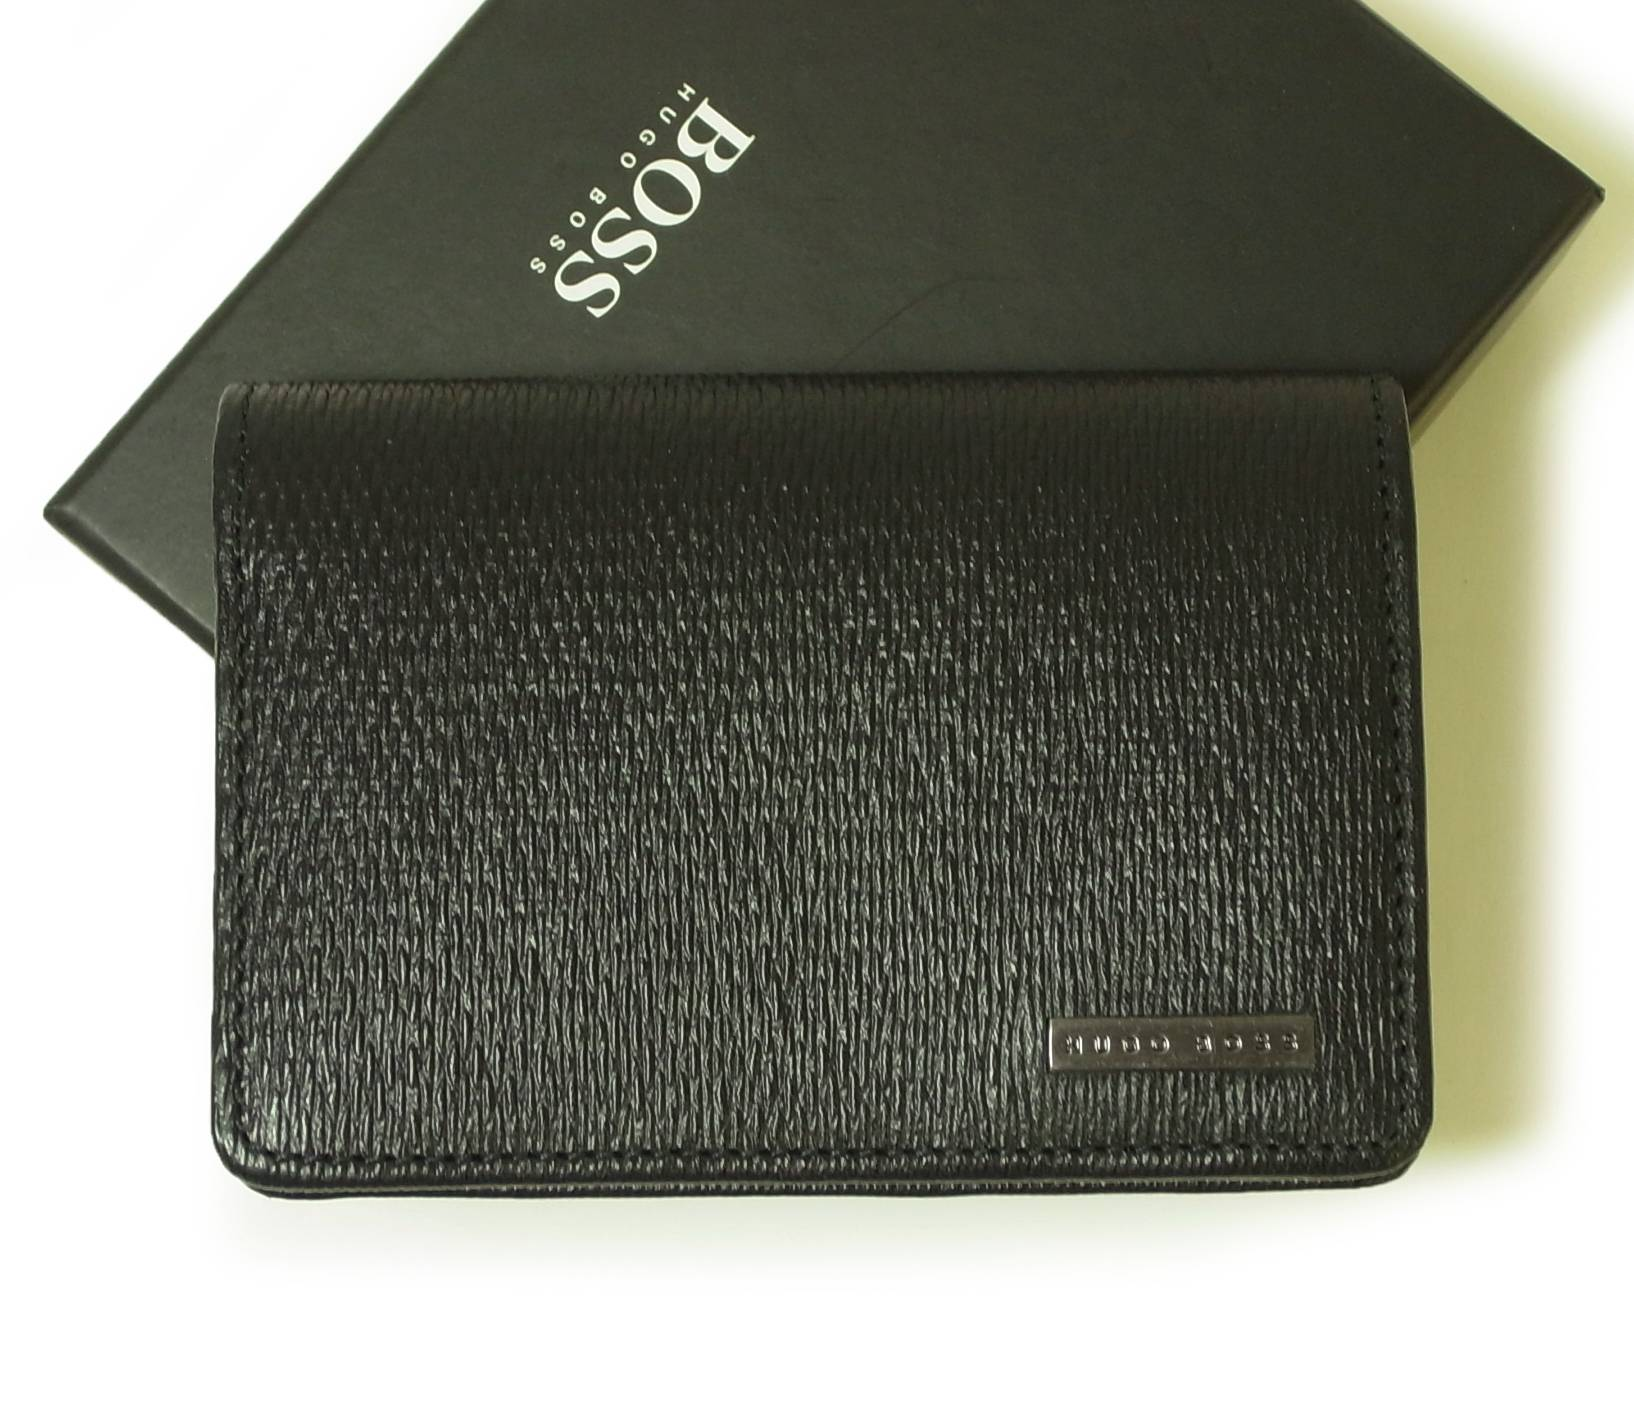 mens-business-card-holder-bland-20-23